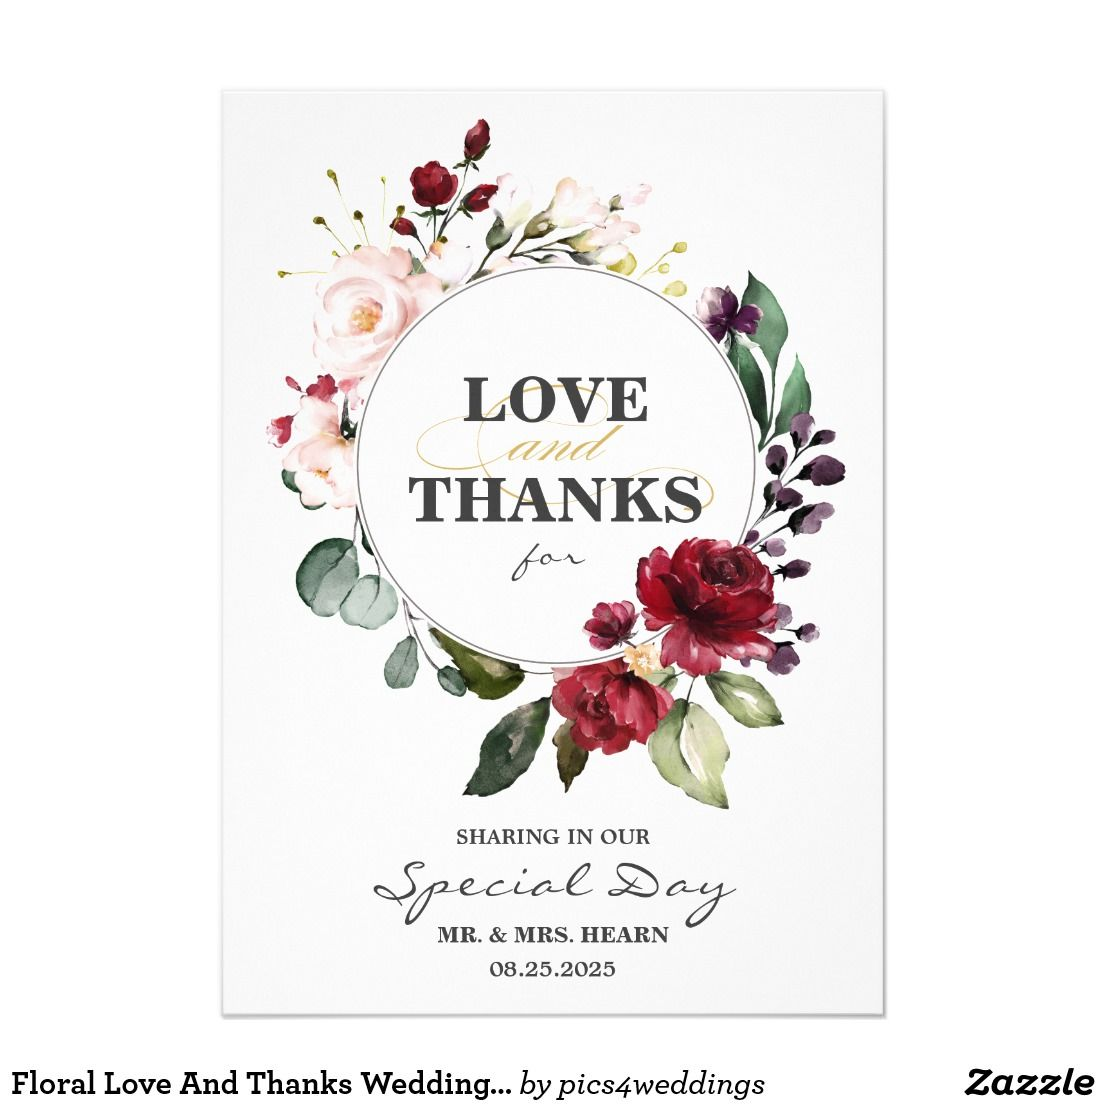 Floral Love And Thanks Wedding Thank You Card Zazzle Com With